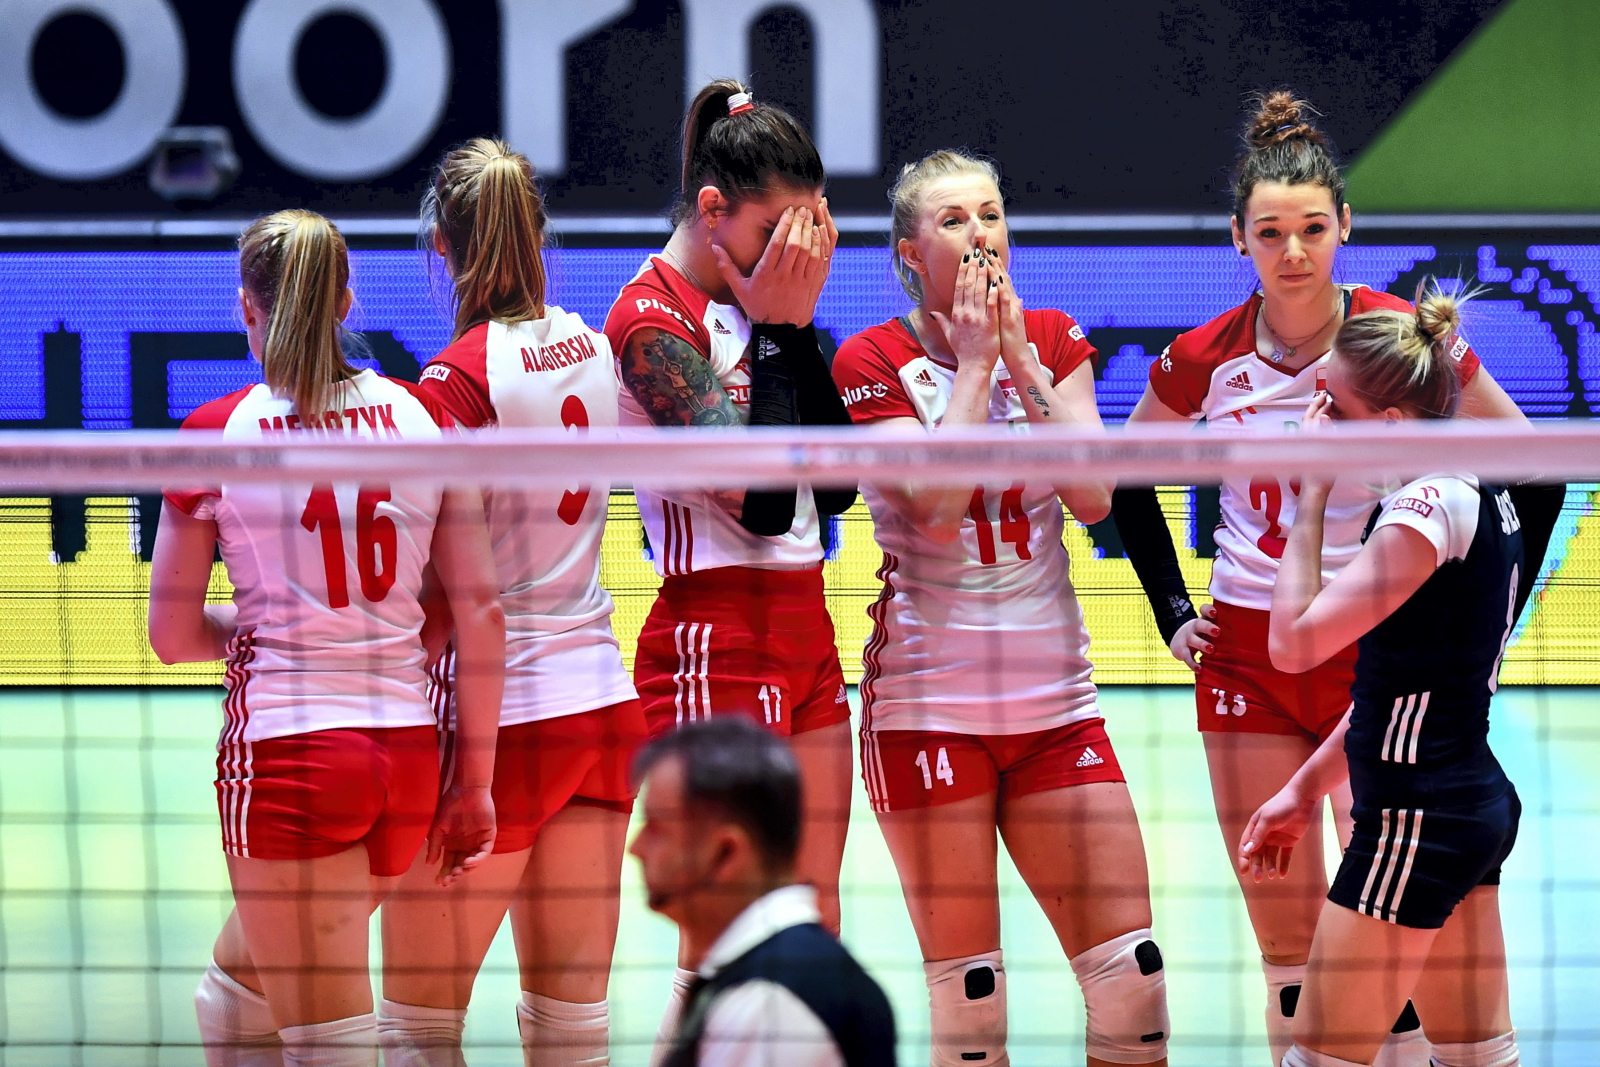 Polish team loses Olympic qualifier against Turkey